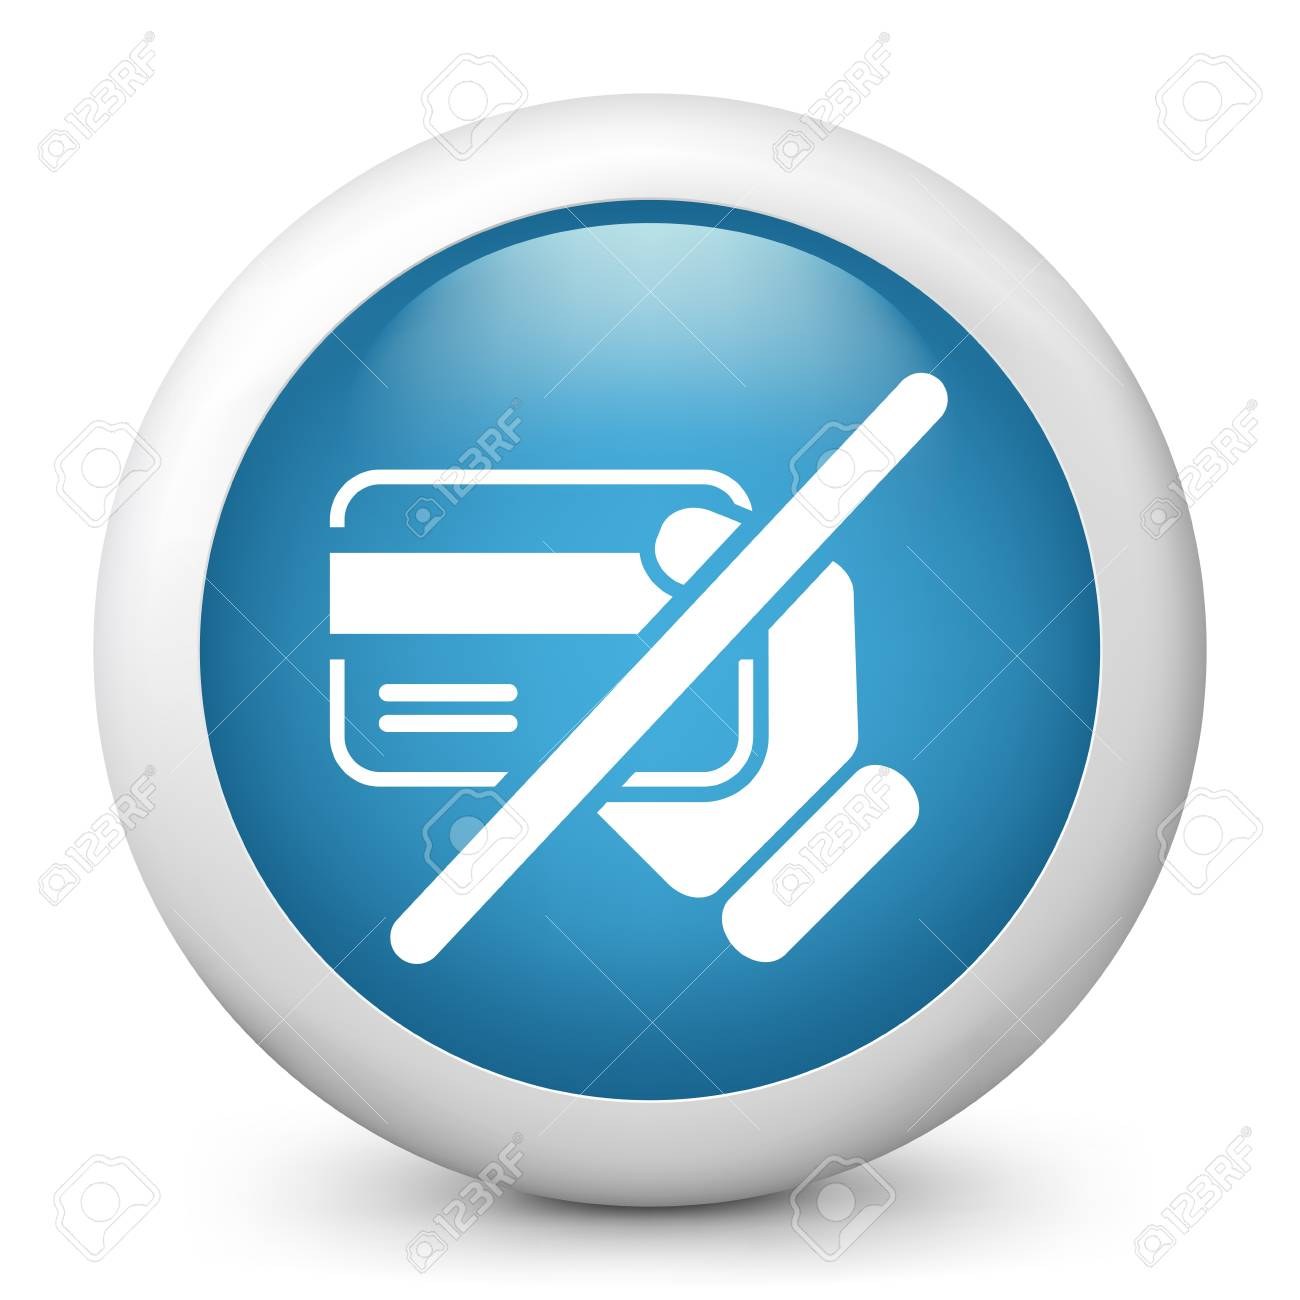 Credit card service not available Stock Vector - 20144713